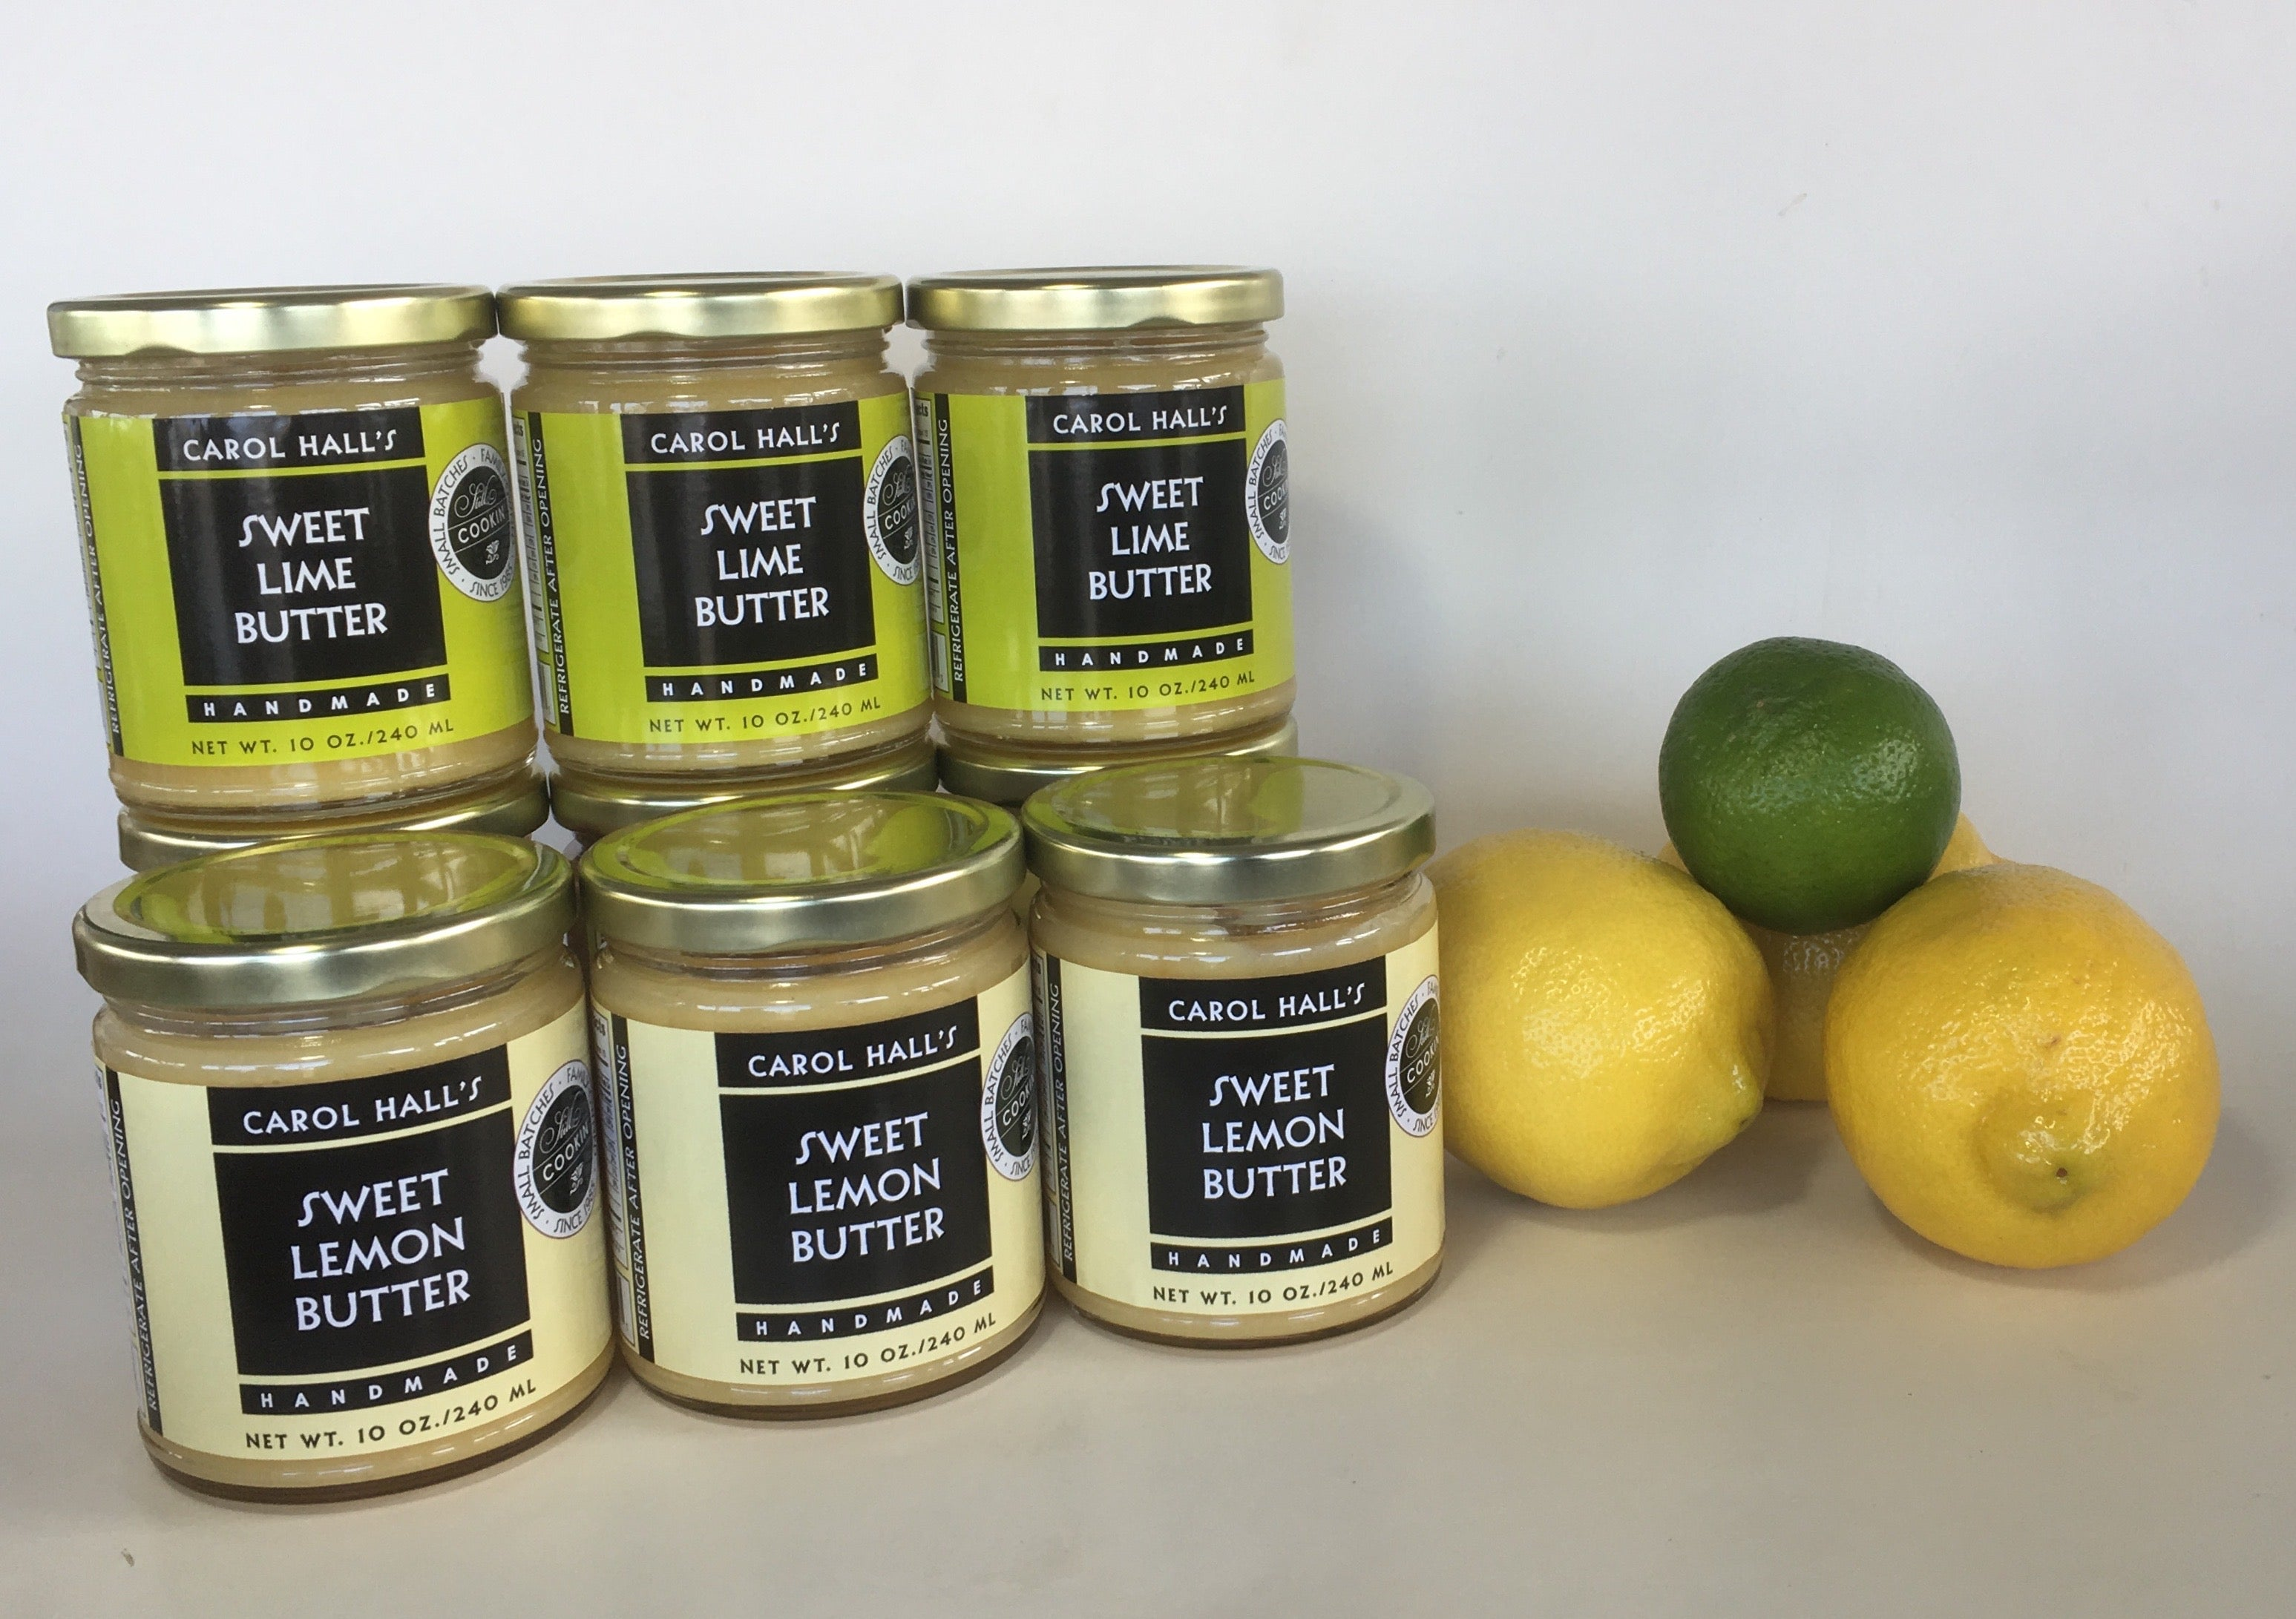 Sweet Lime Butter